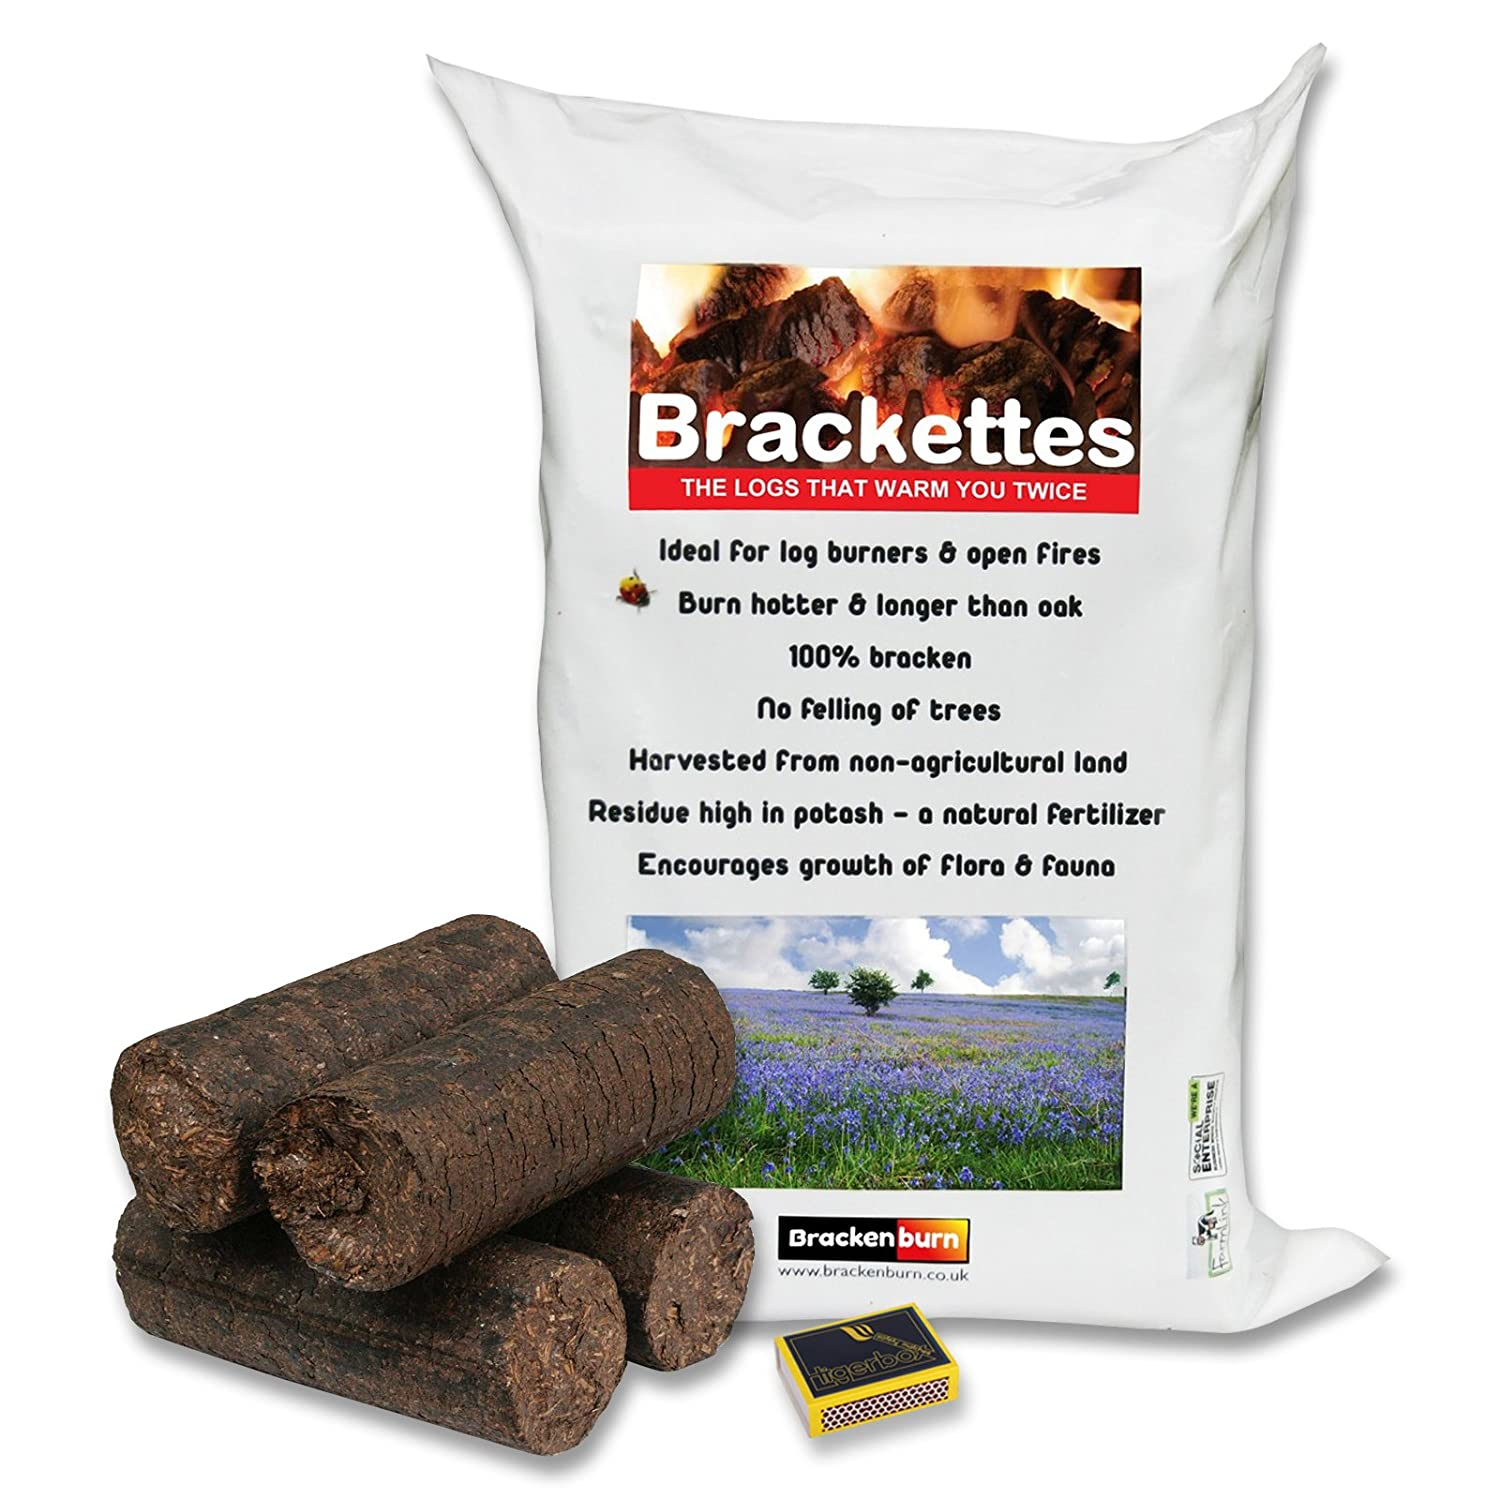 10 Brackenburn Brackettes Logs & Tigerbox Safety Matches. Renewable Extra Hot Solid Fuel made from Bracken.